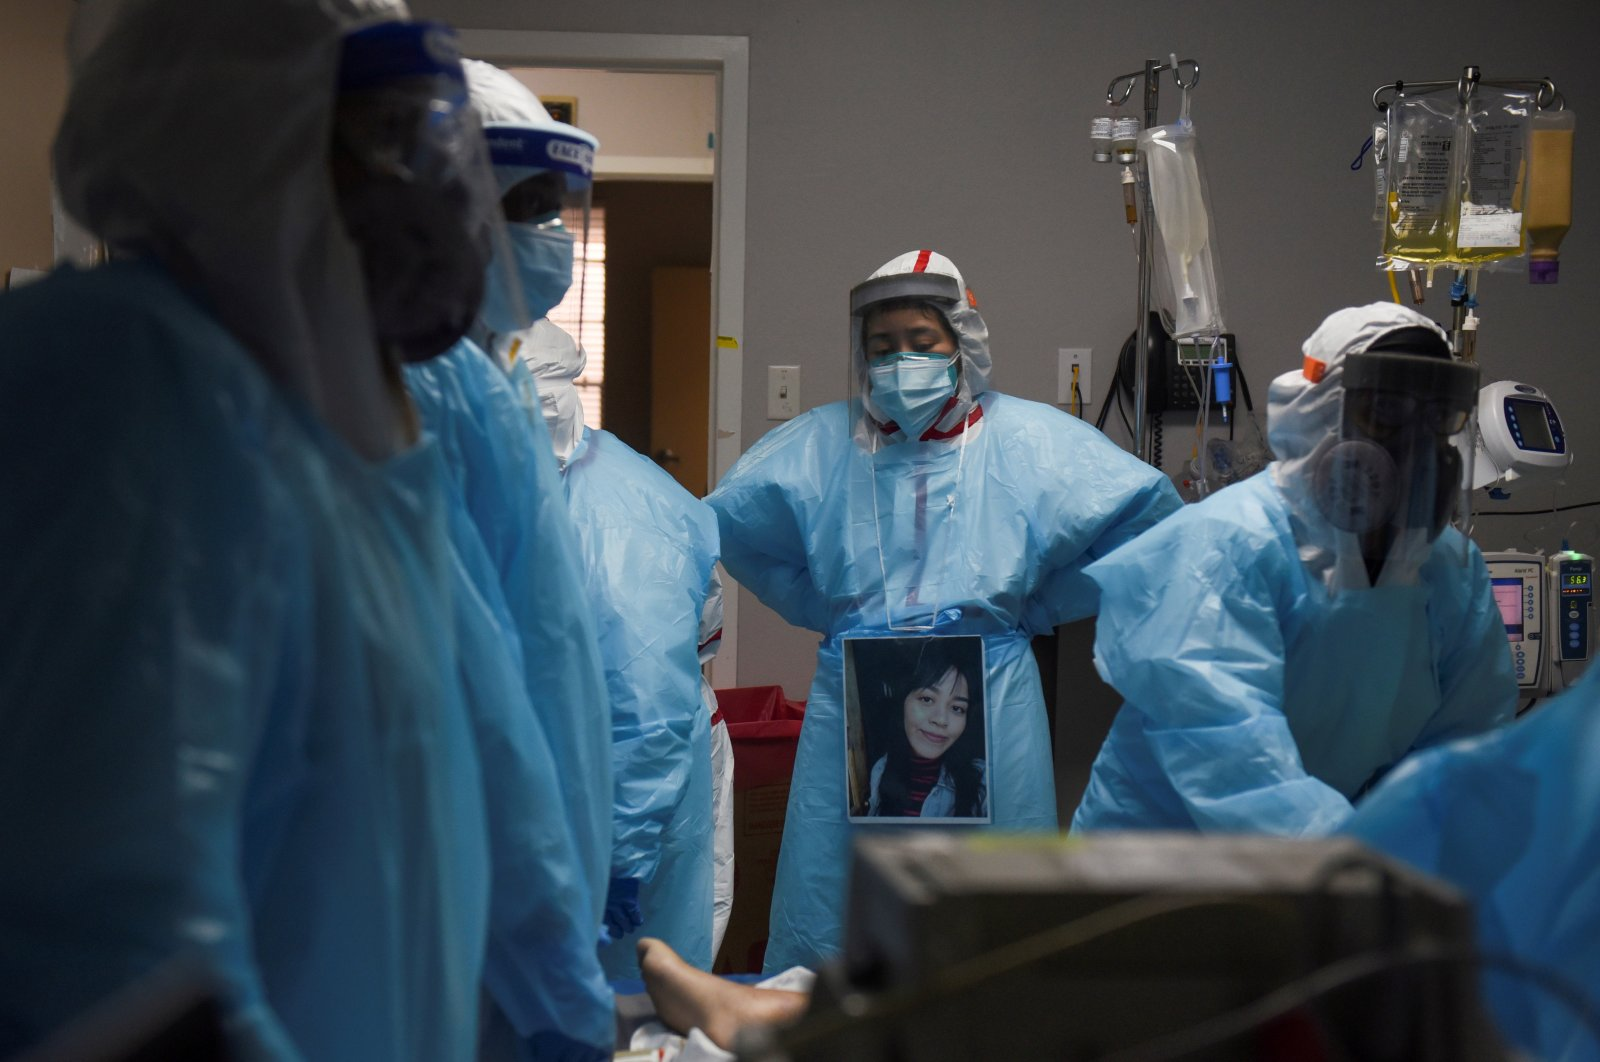 Health care personnel surround a patient who died inside a coronavirus disease (COVID-19) unit at United Memorial Medical Center, in Houston, Texas, U.S., Dec. 12, 2020.  (Reuters Photo)